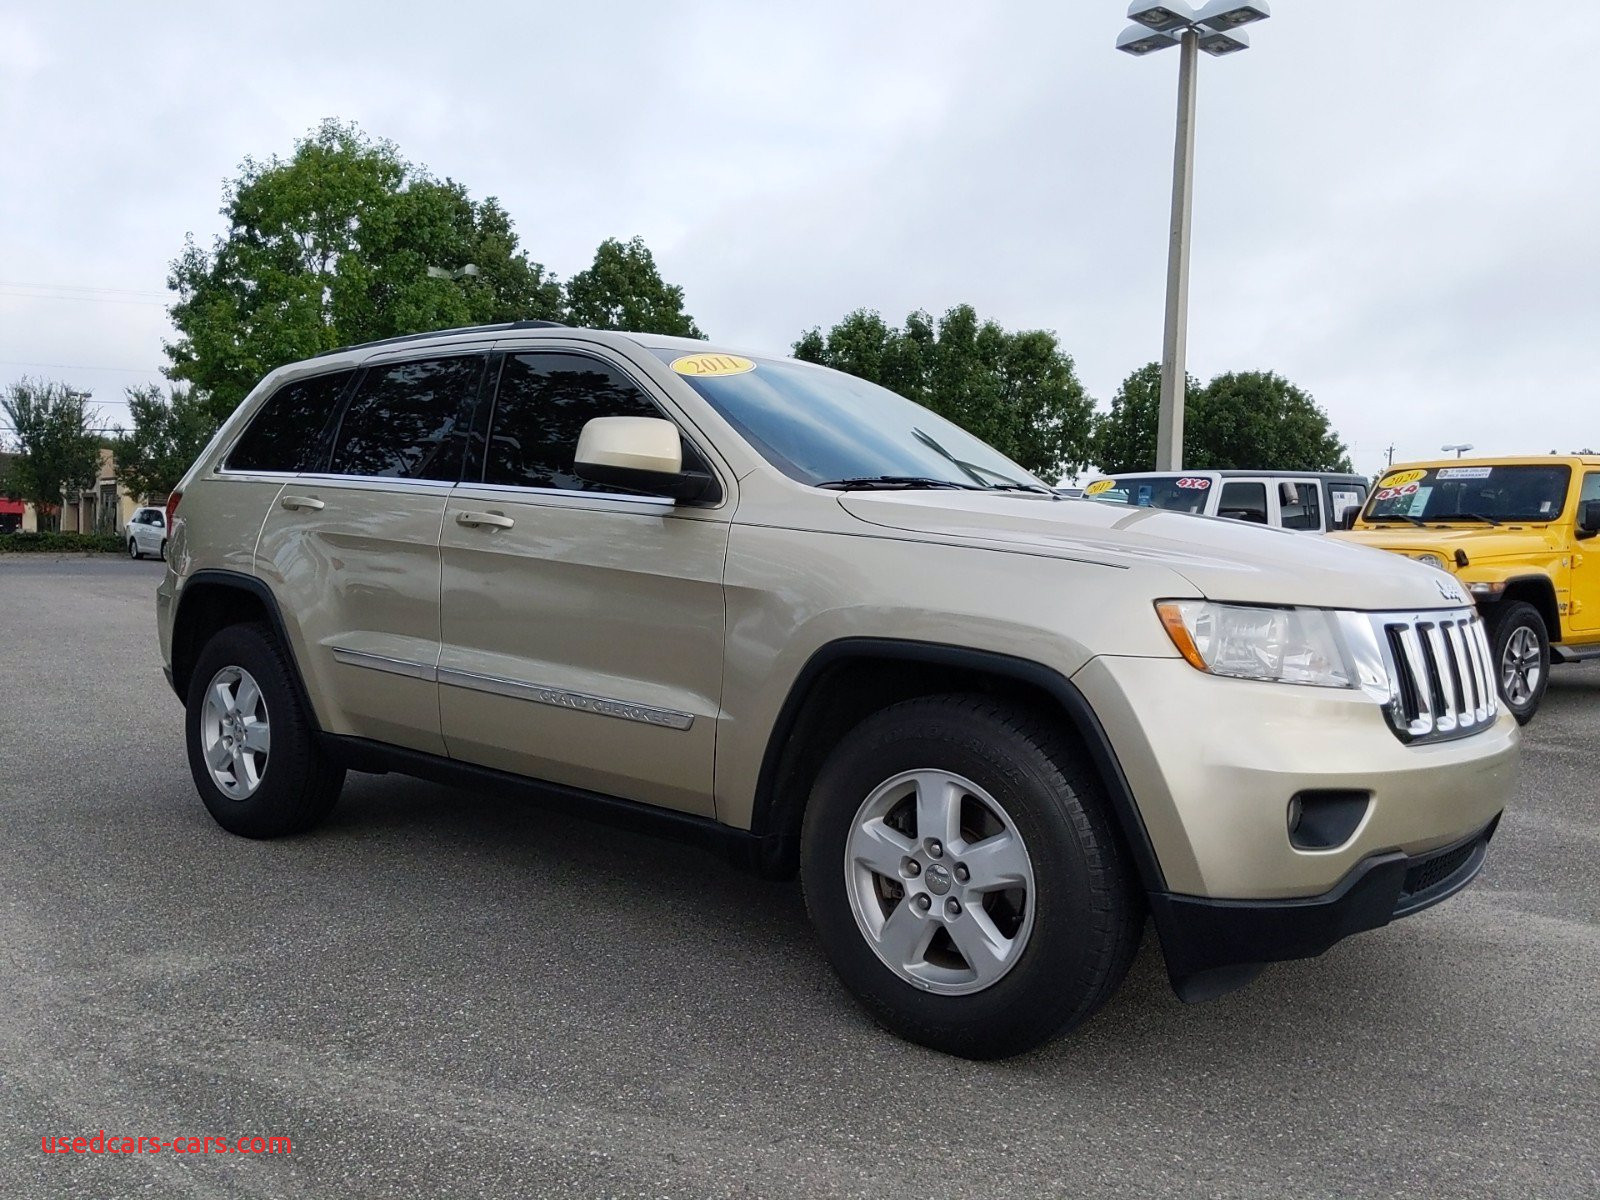 Used Cars Near Me Under 8000 Luxury Used Car & Truck Inventory